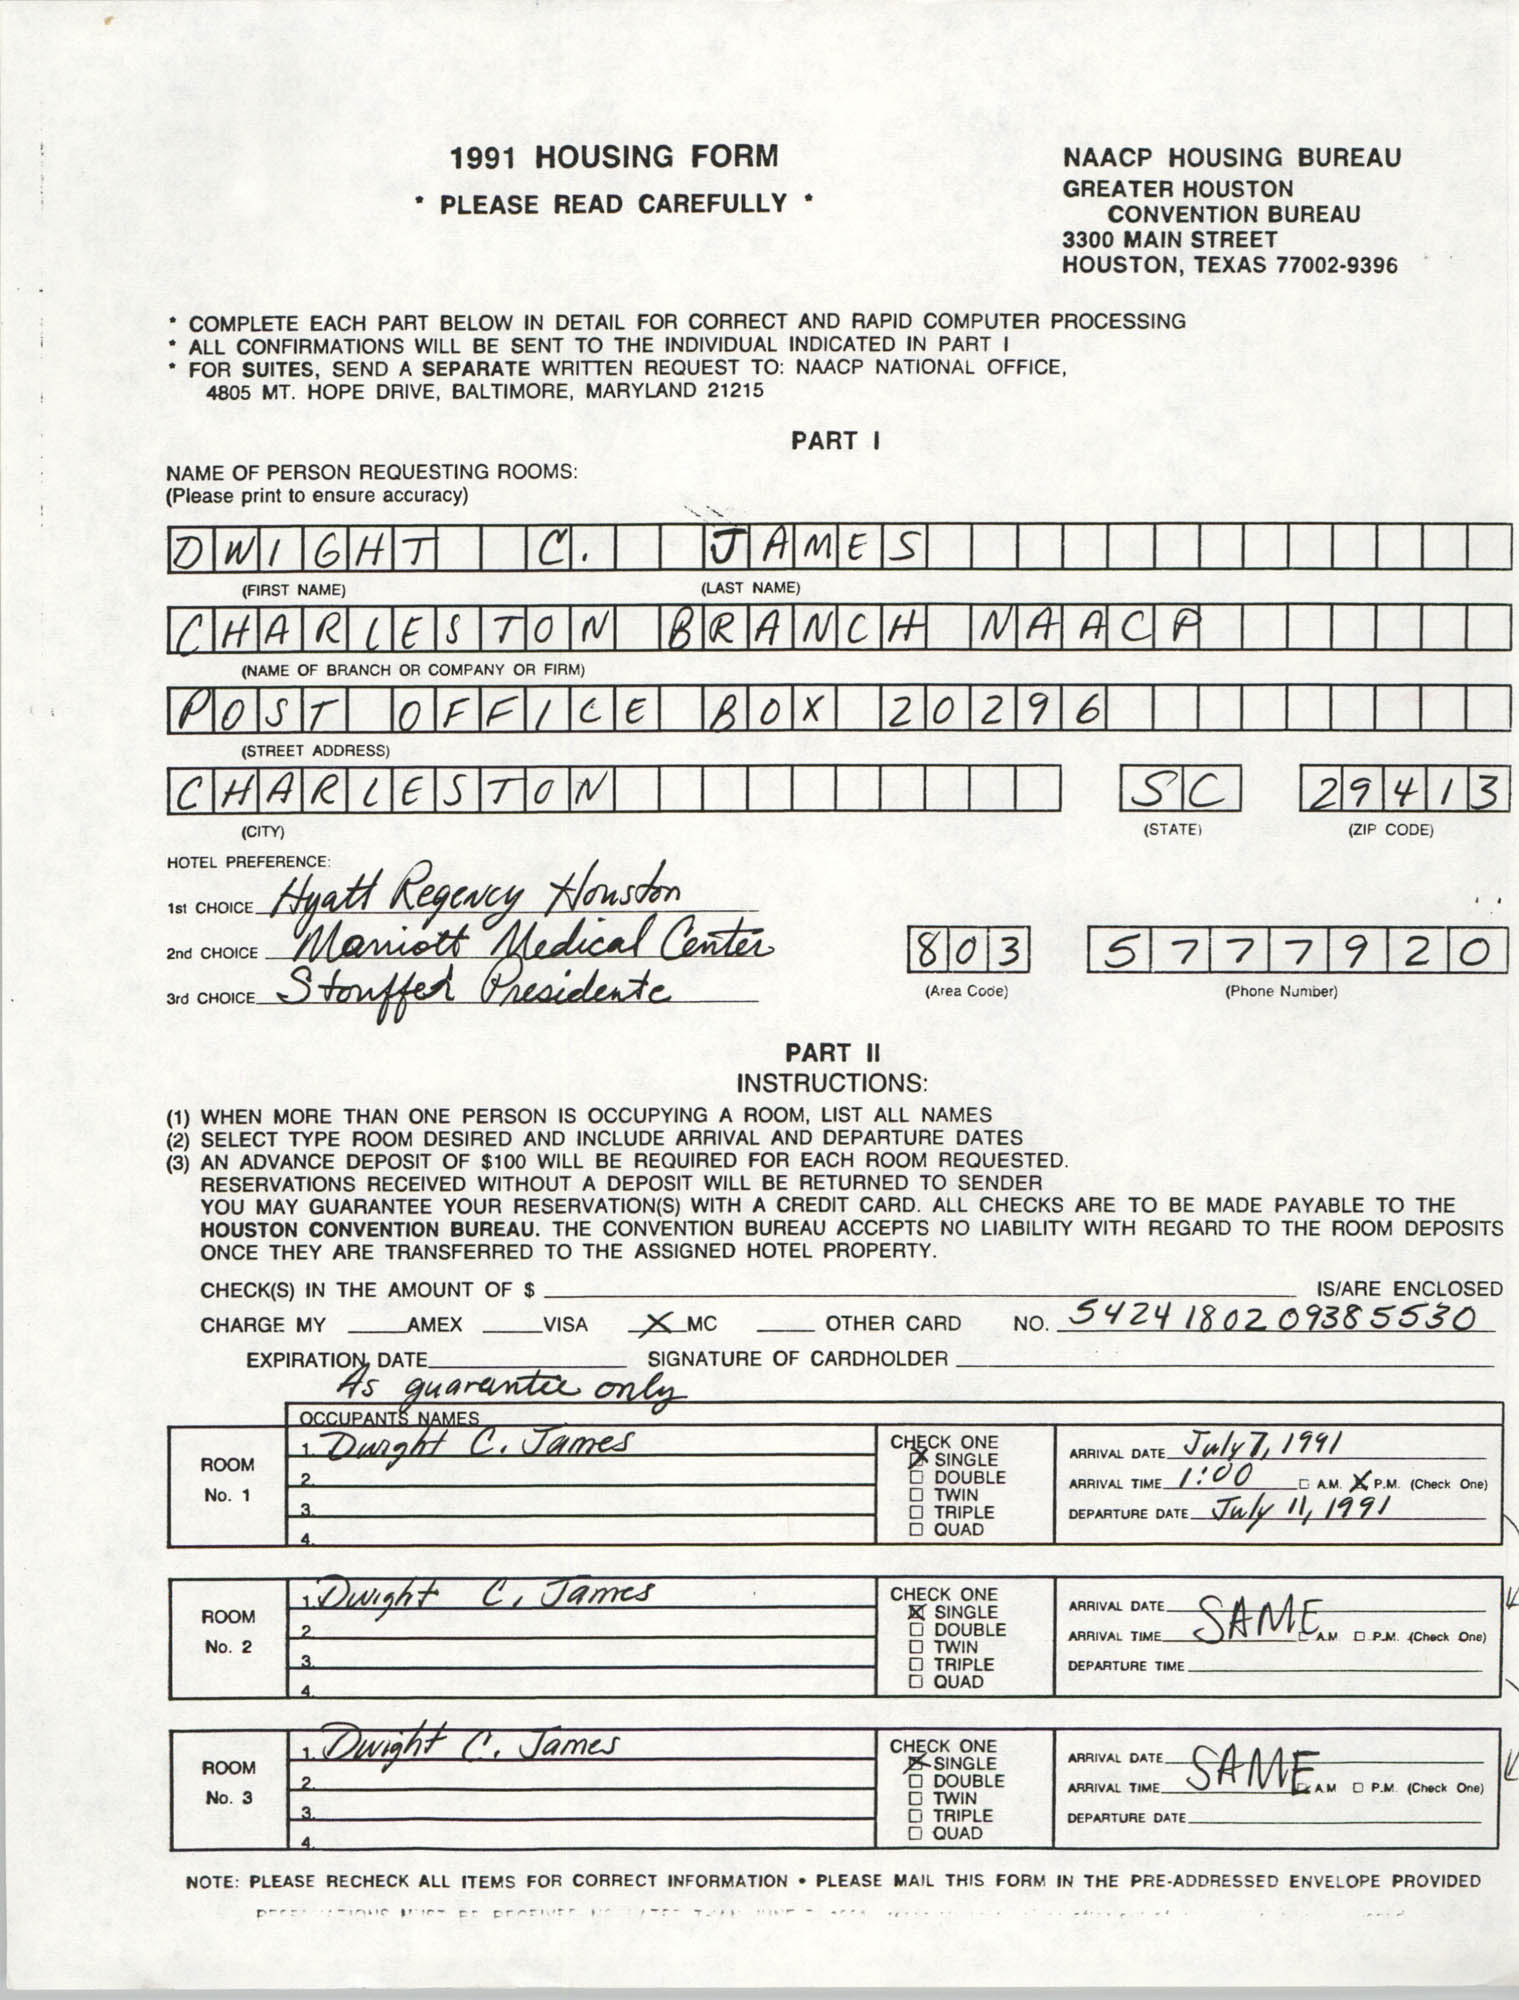 NAACP Housing Bureau, 1991 Housing Form